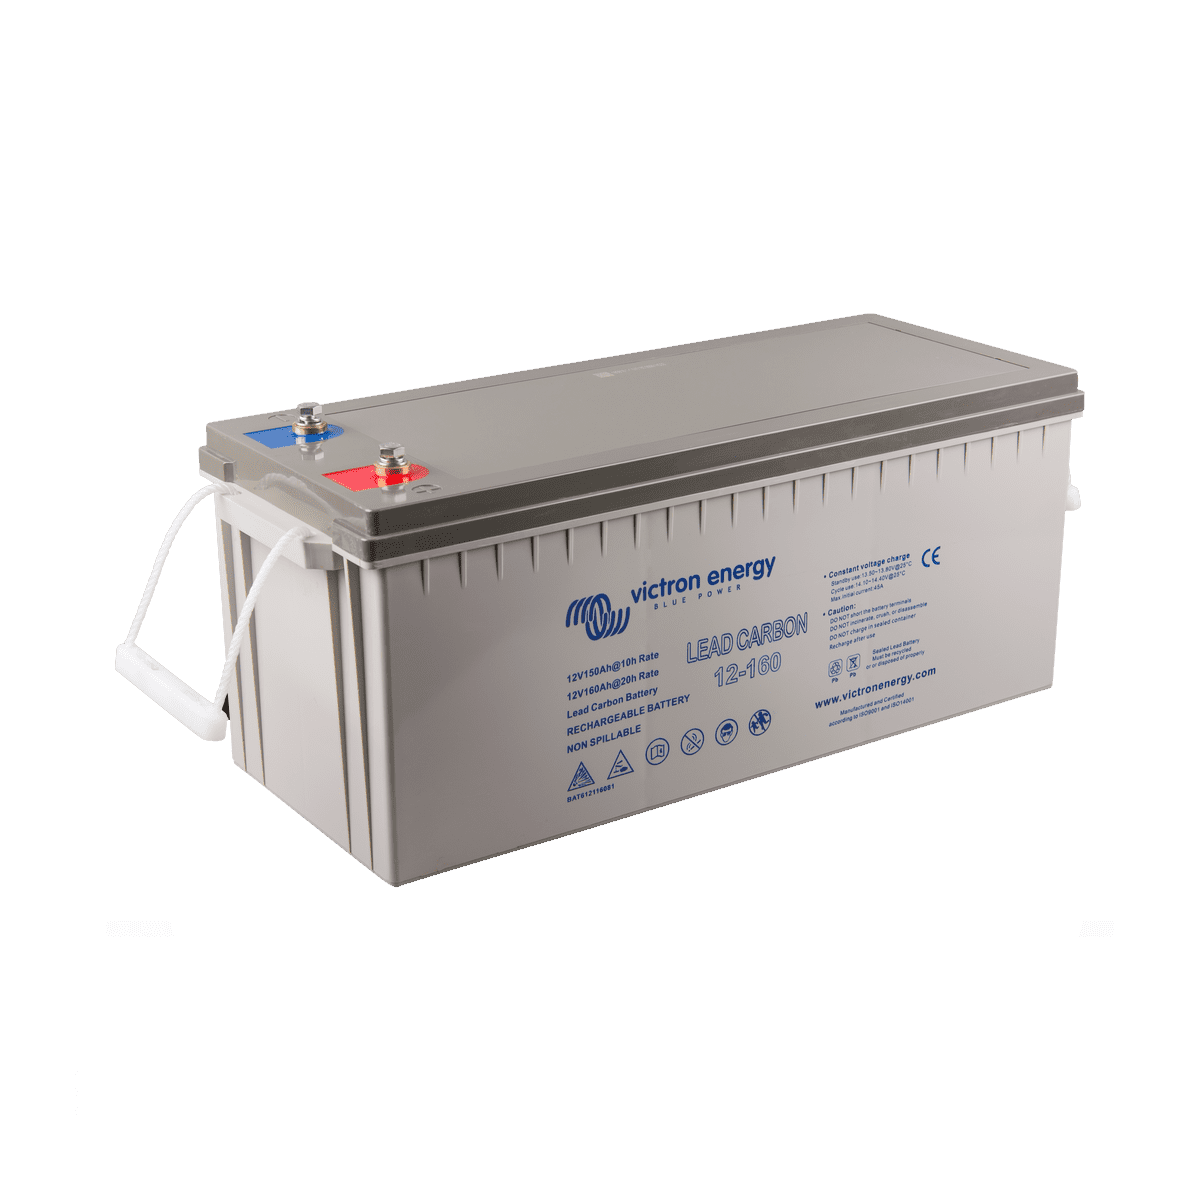 Victron 12V 160Ah Lead Carbon Deep Cycle Battery on Sale